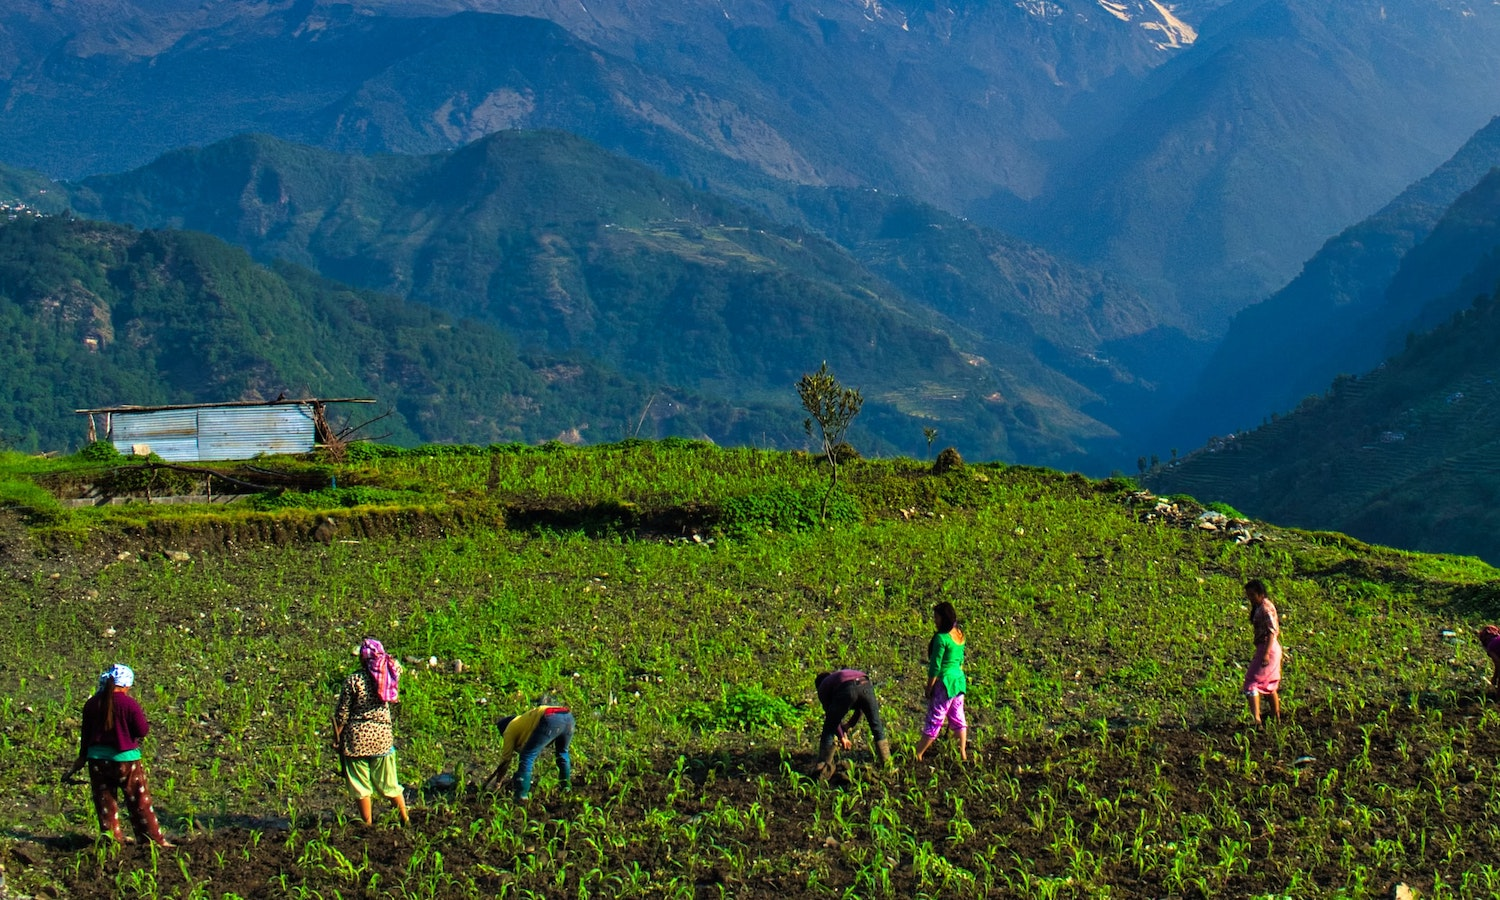 Small scale farms Offer a Model of Resilience